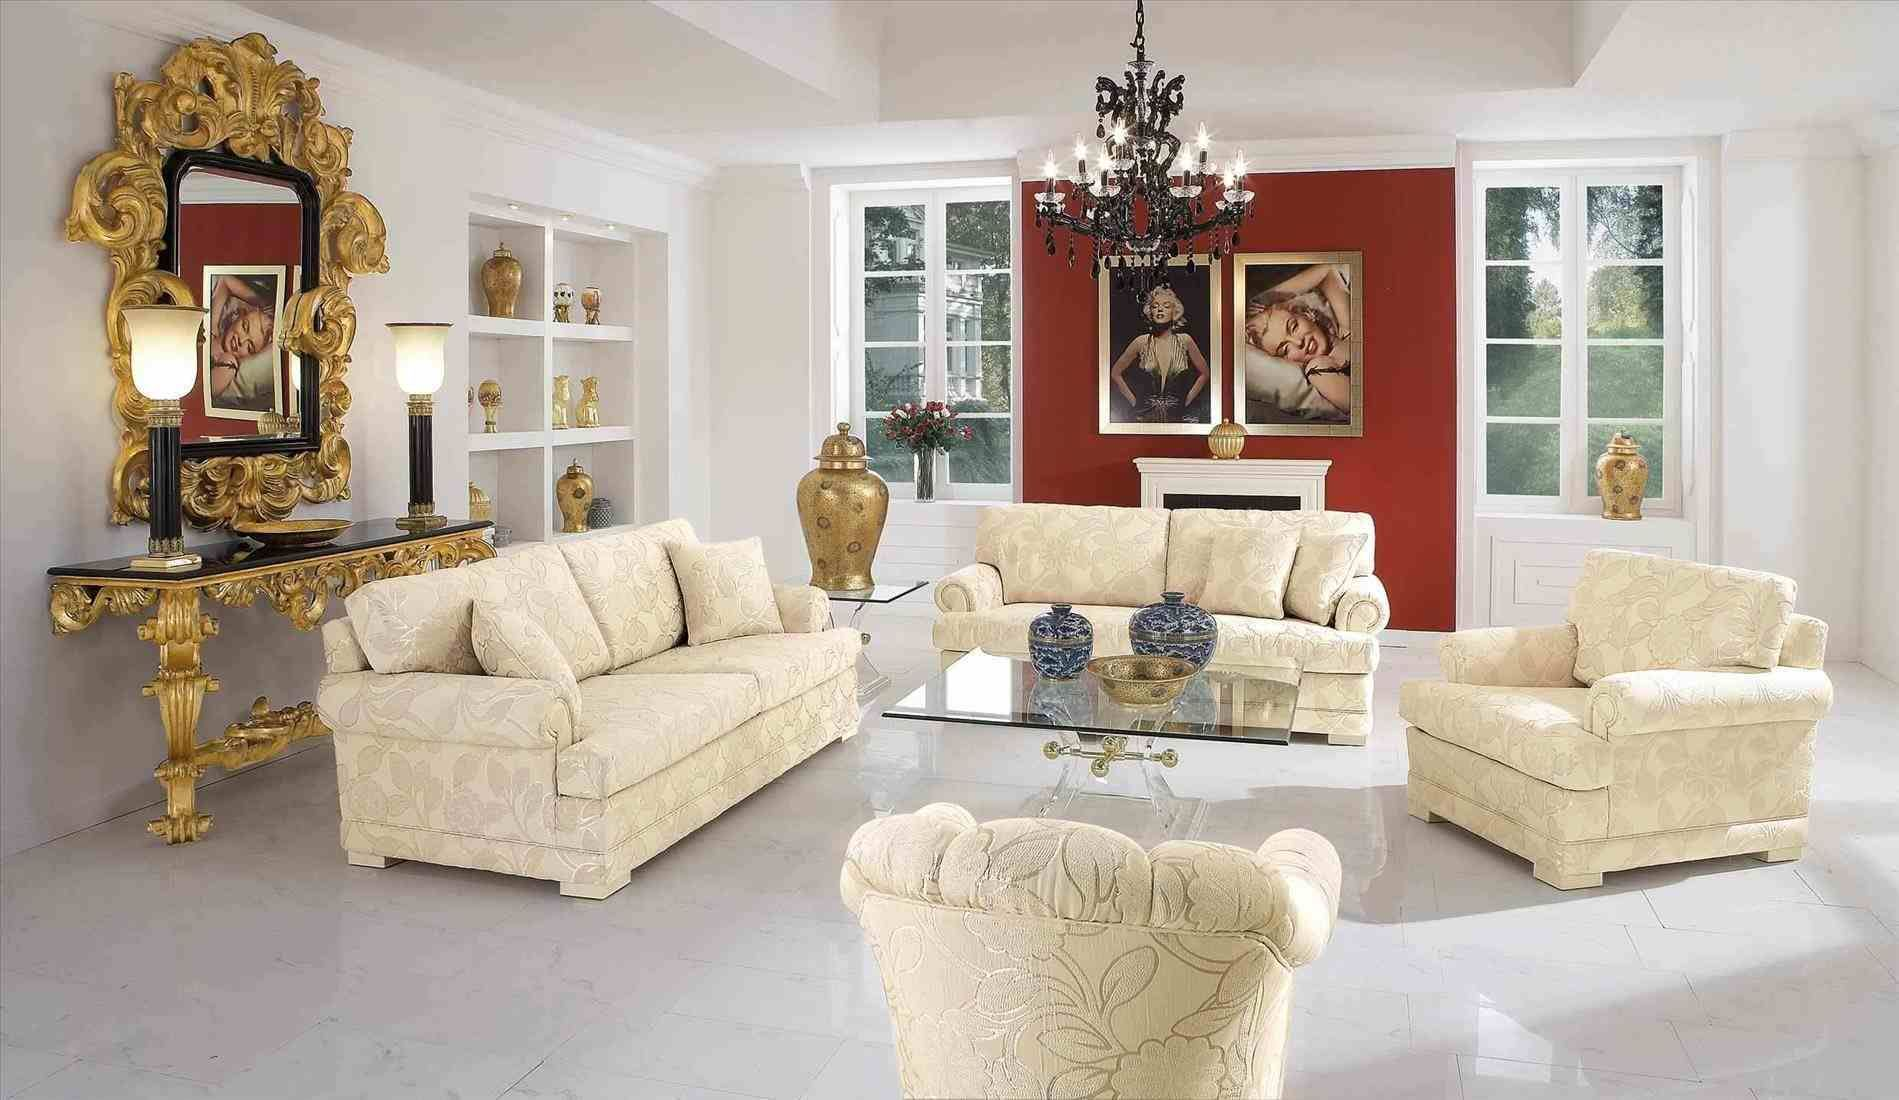 most beautiful modern living rooms. New Post Most Beautiful Modern Living Rooms Visit Bobayule Trending Decors 9